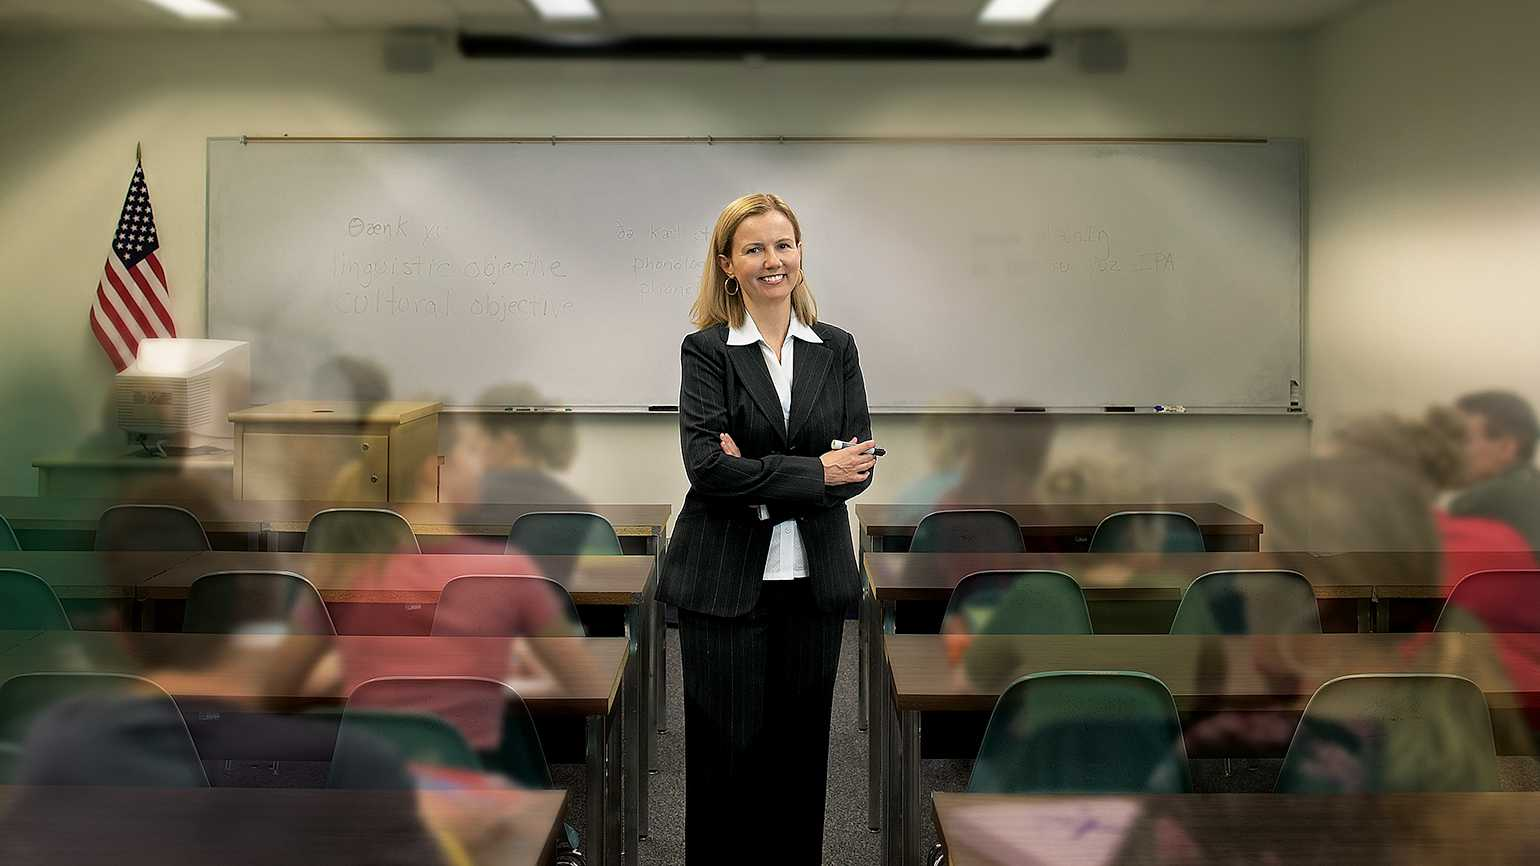 Joyce stands surrounded by her students in a classroom